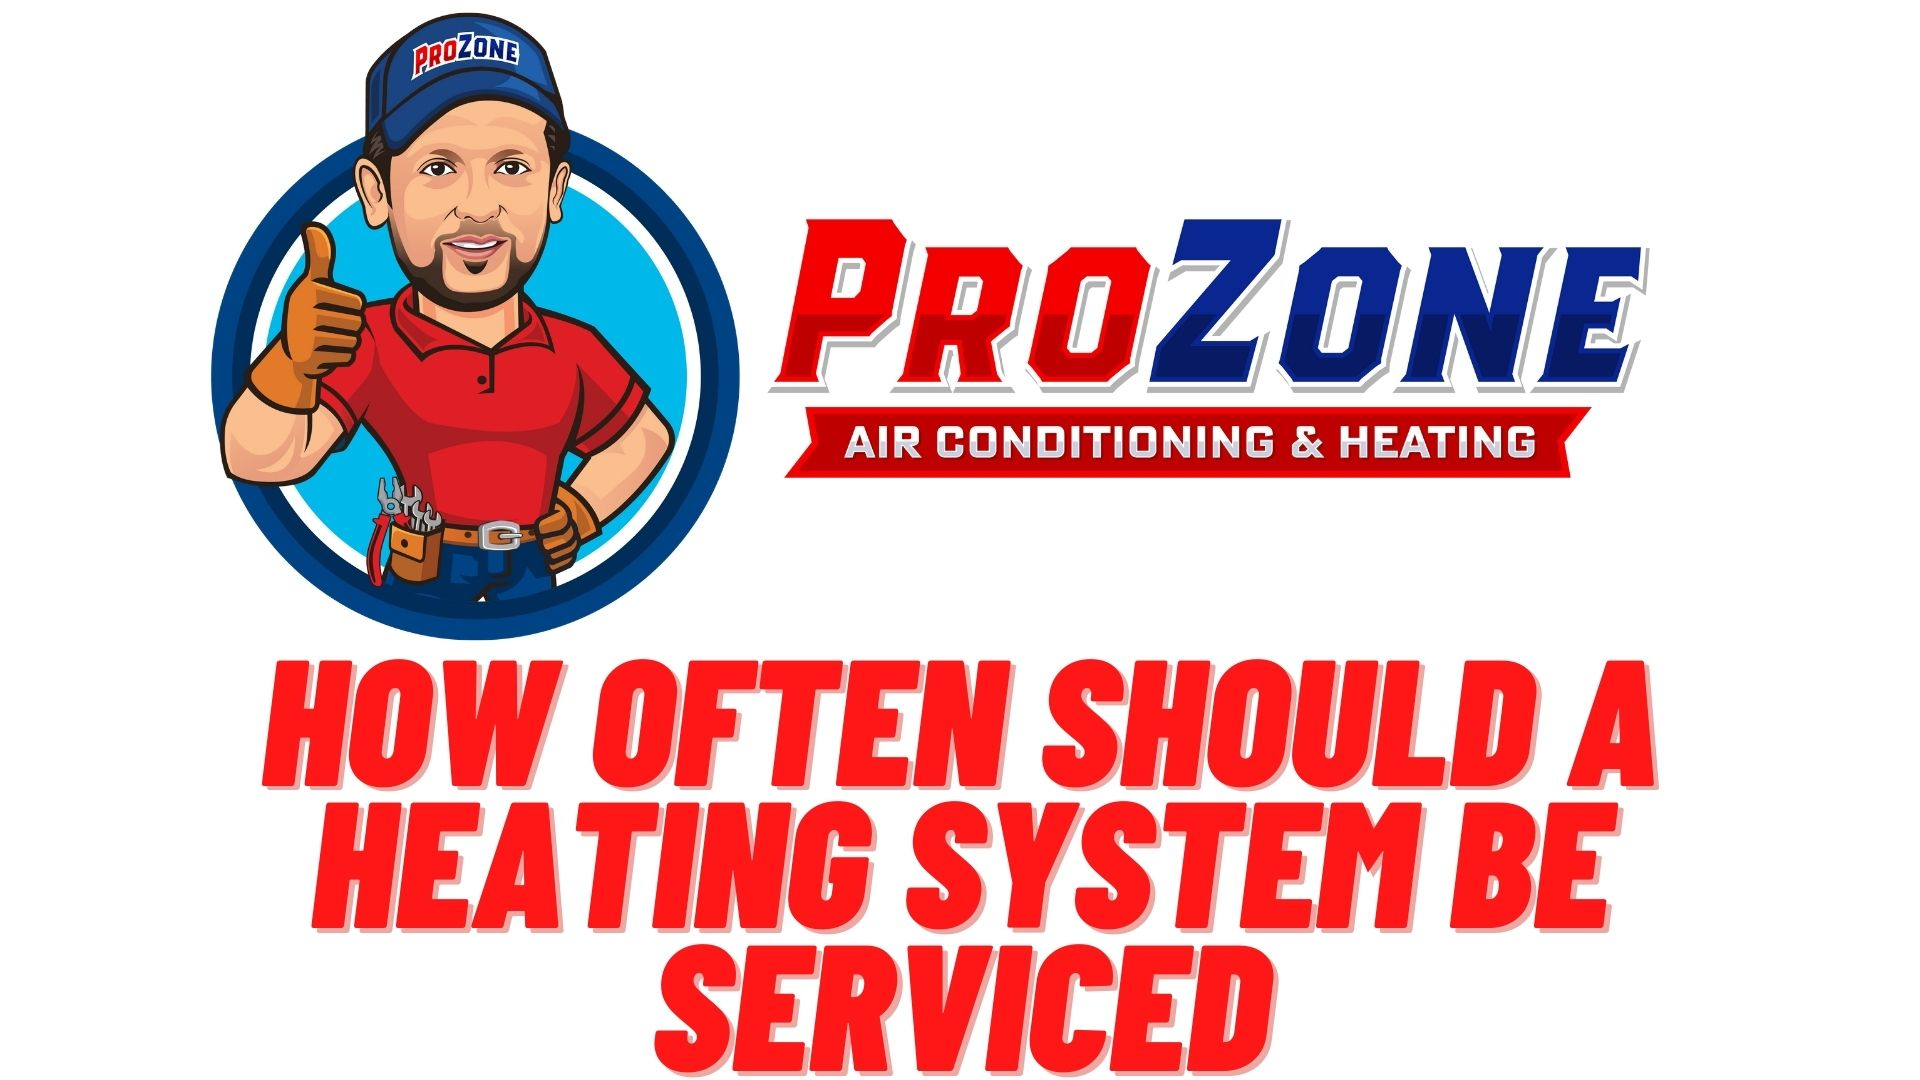 How Often Should a Heating System be Serviced